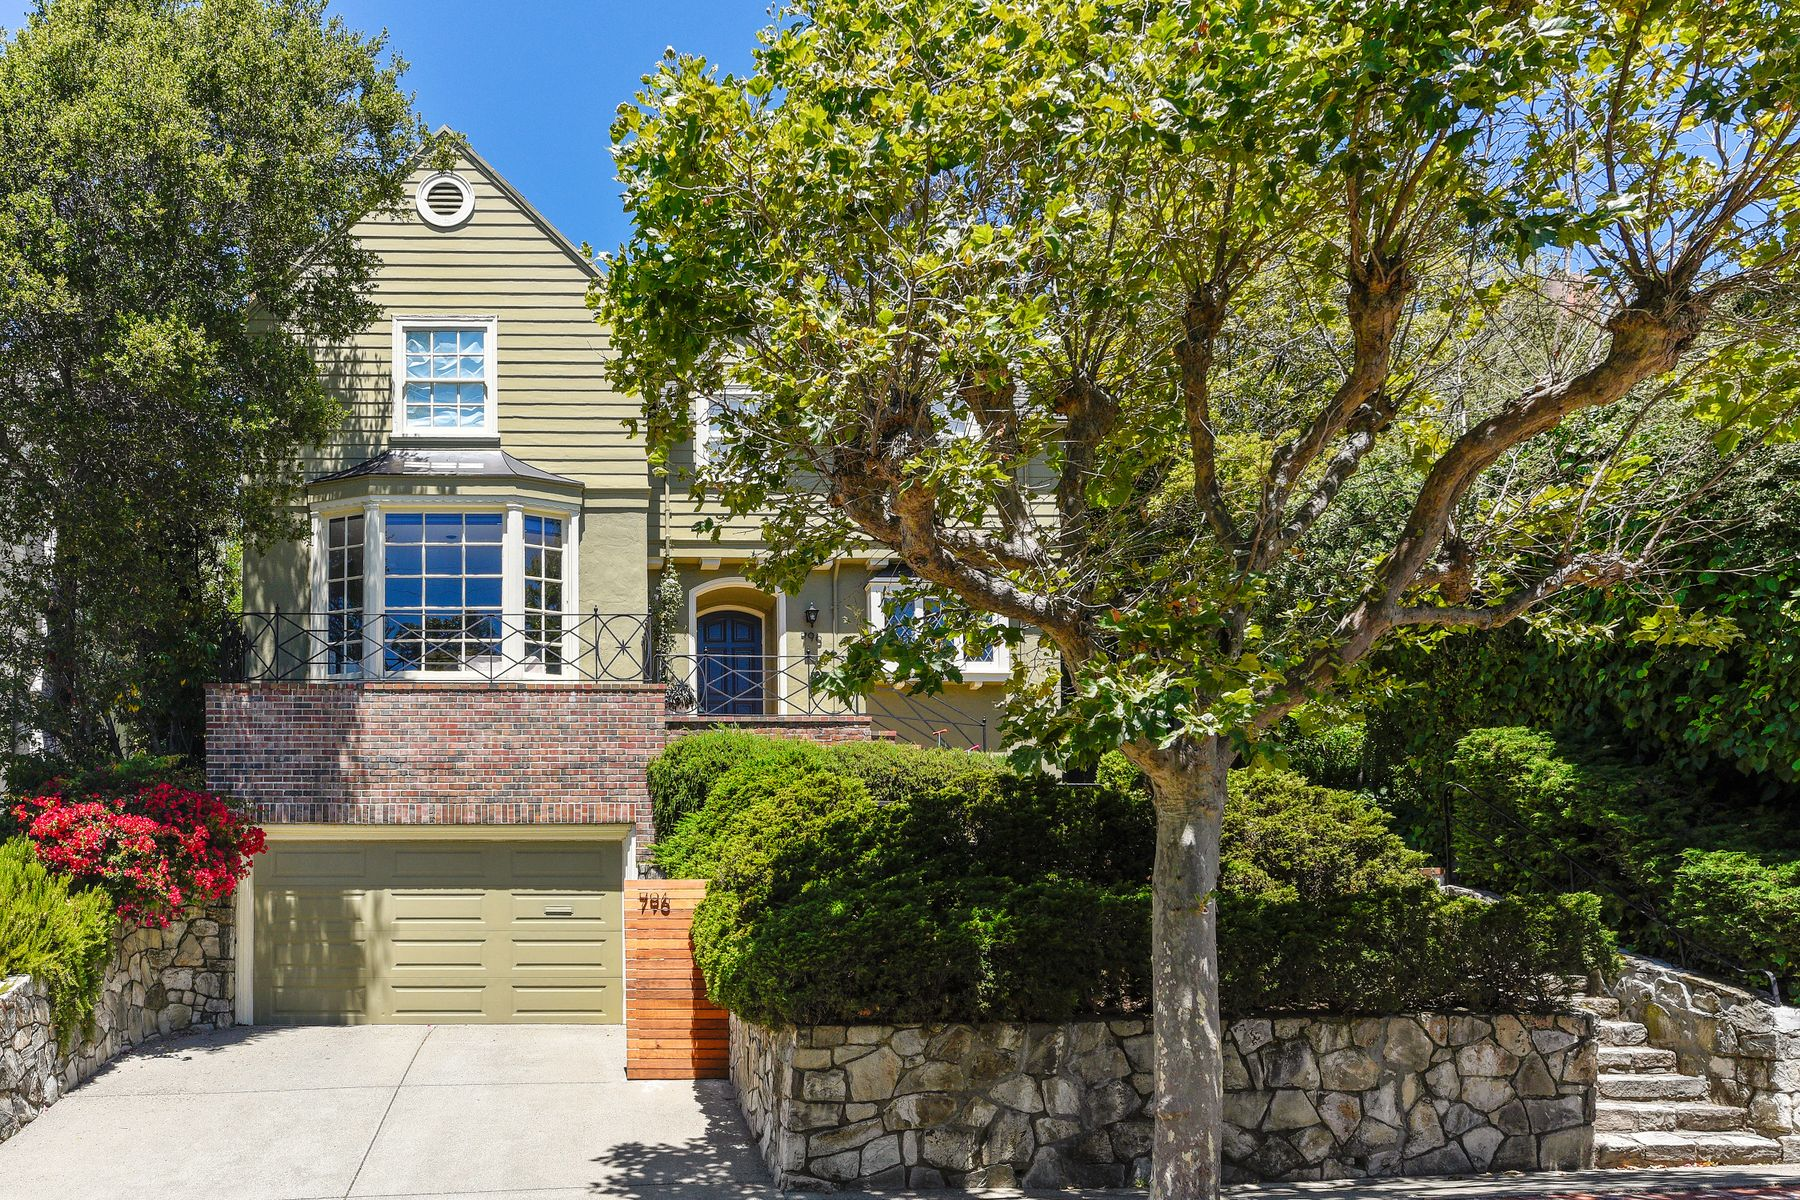 Single Family Homes for Sale at Enchanting and Exceptionally Enhanced 796 Rosemount Rd Oakland, California 94610 United States